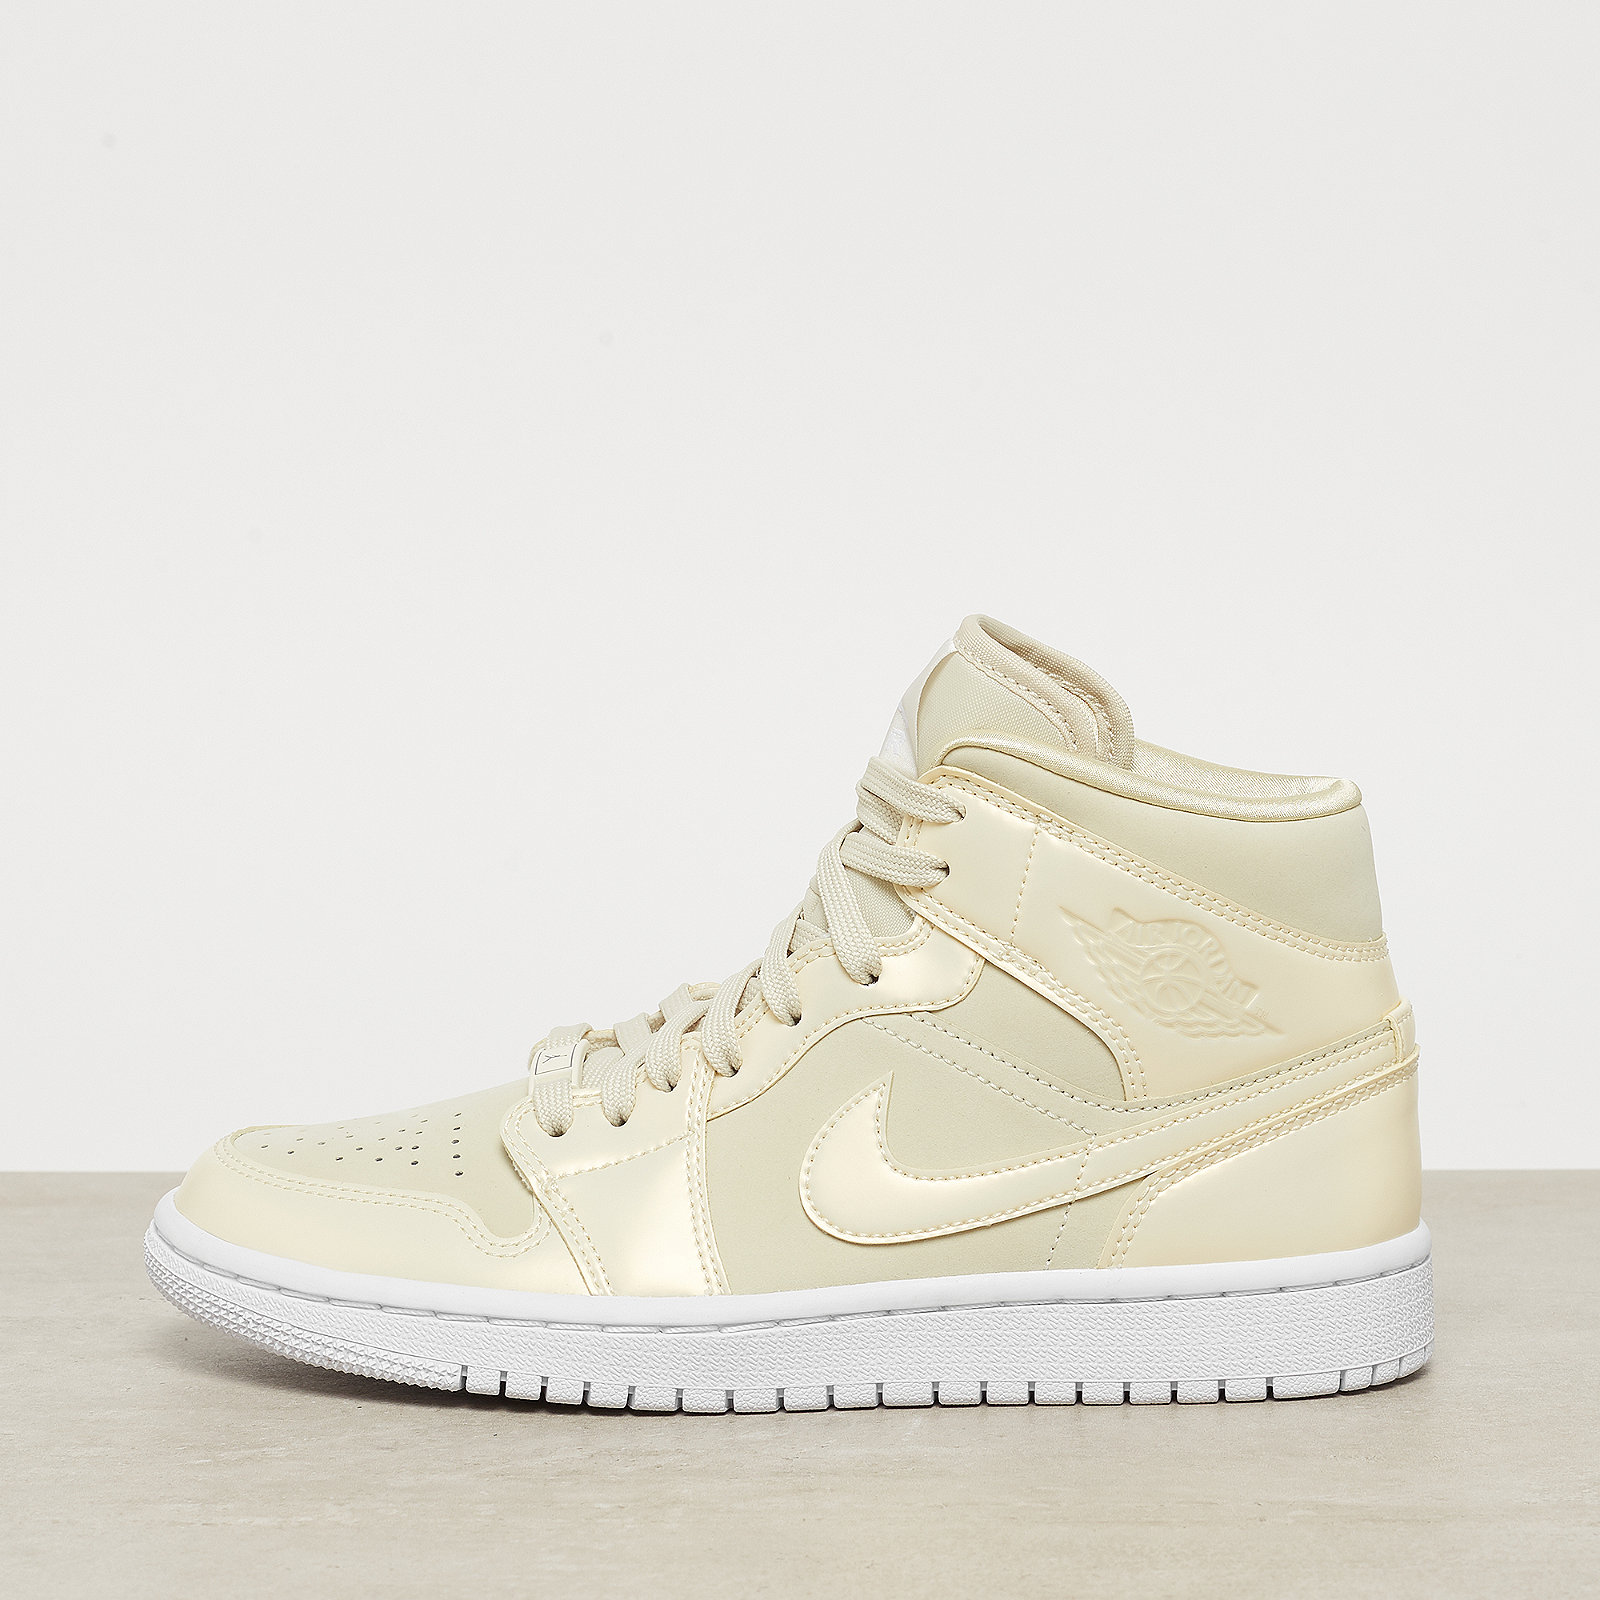 Air Jordan 1 Mid SE fossil/fossil-white fossil/fossil-white